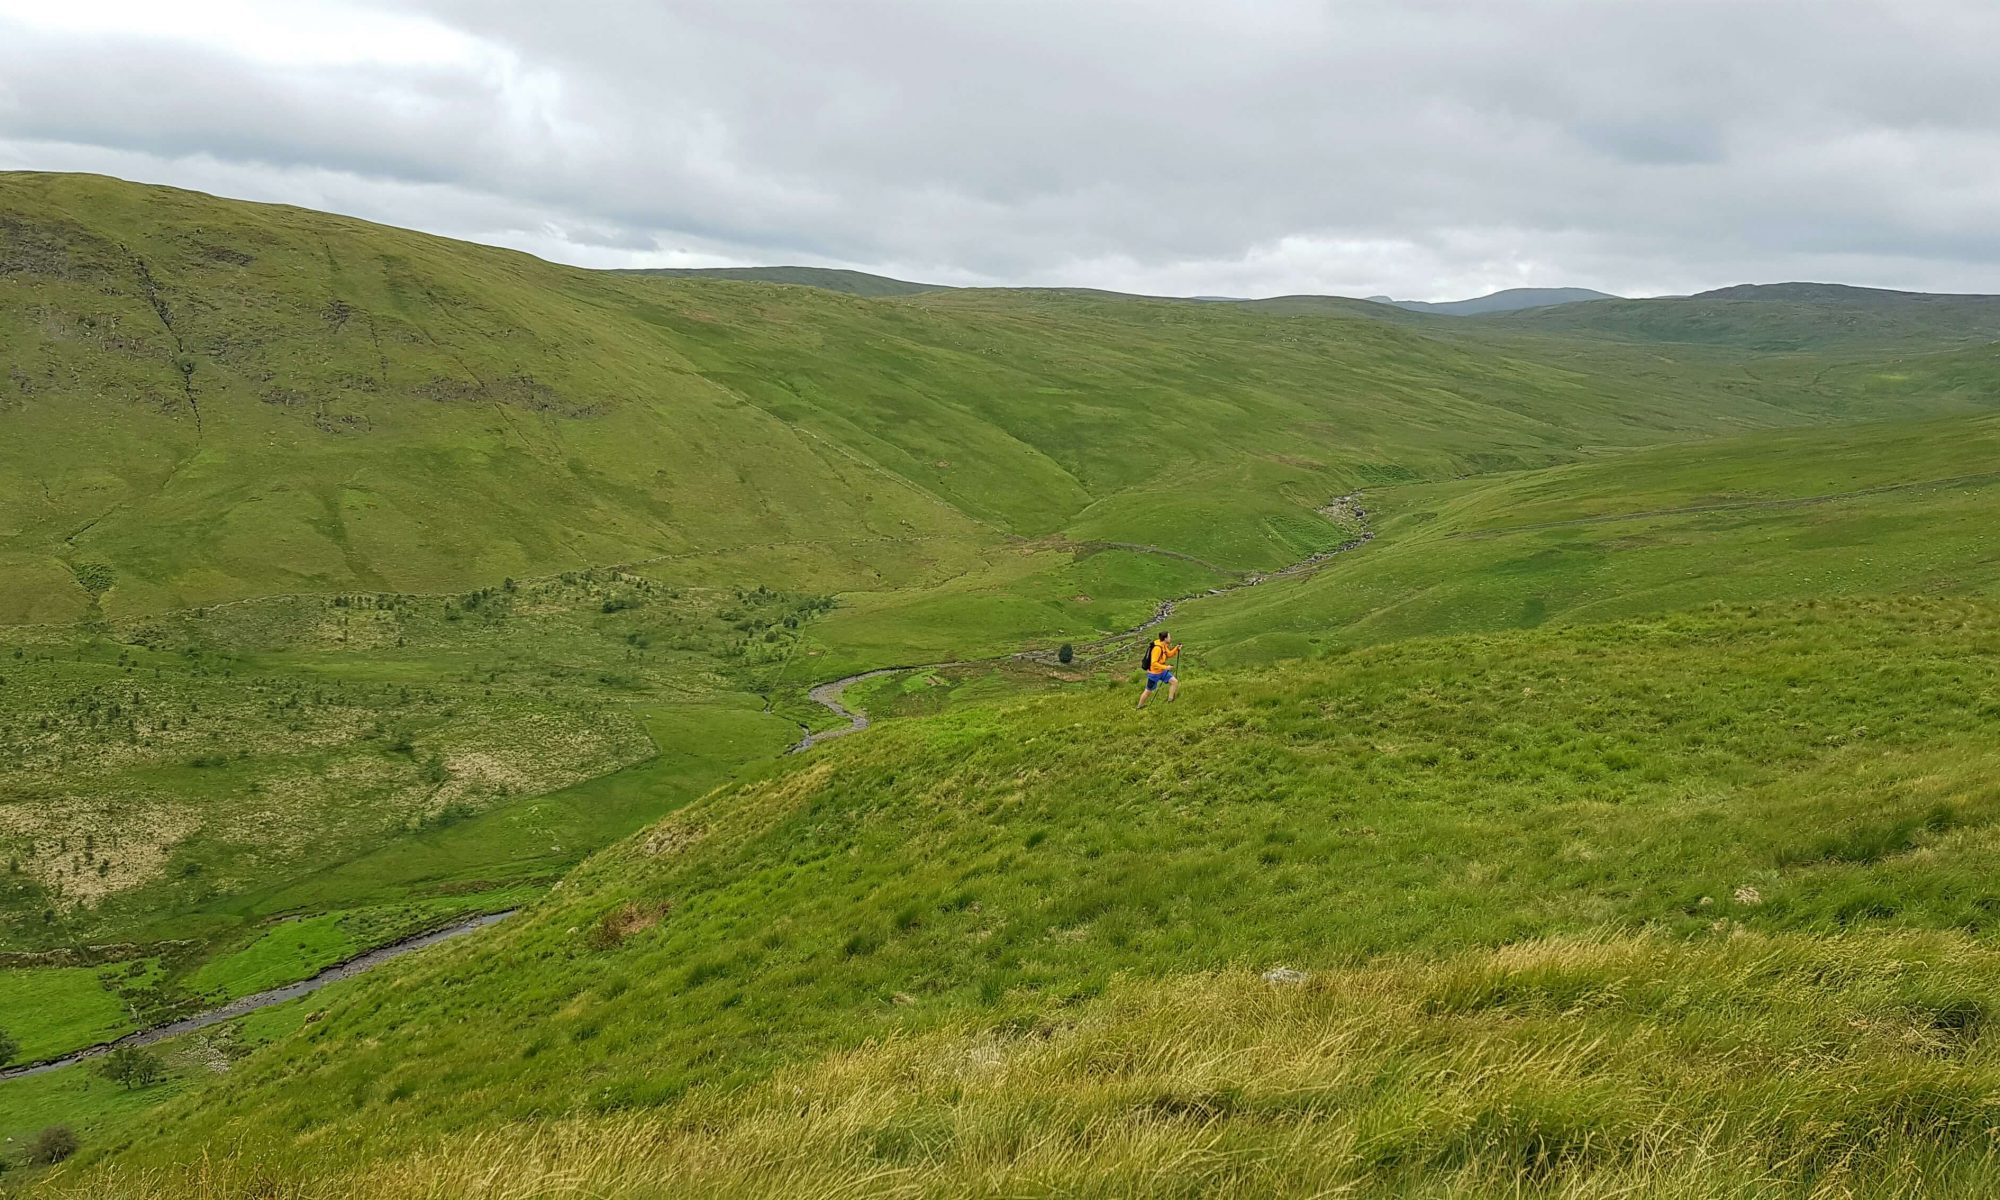 James Forrest on High House Bank on the Crookdale Horseshoe in the Shap Fells